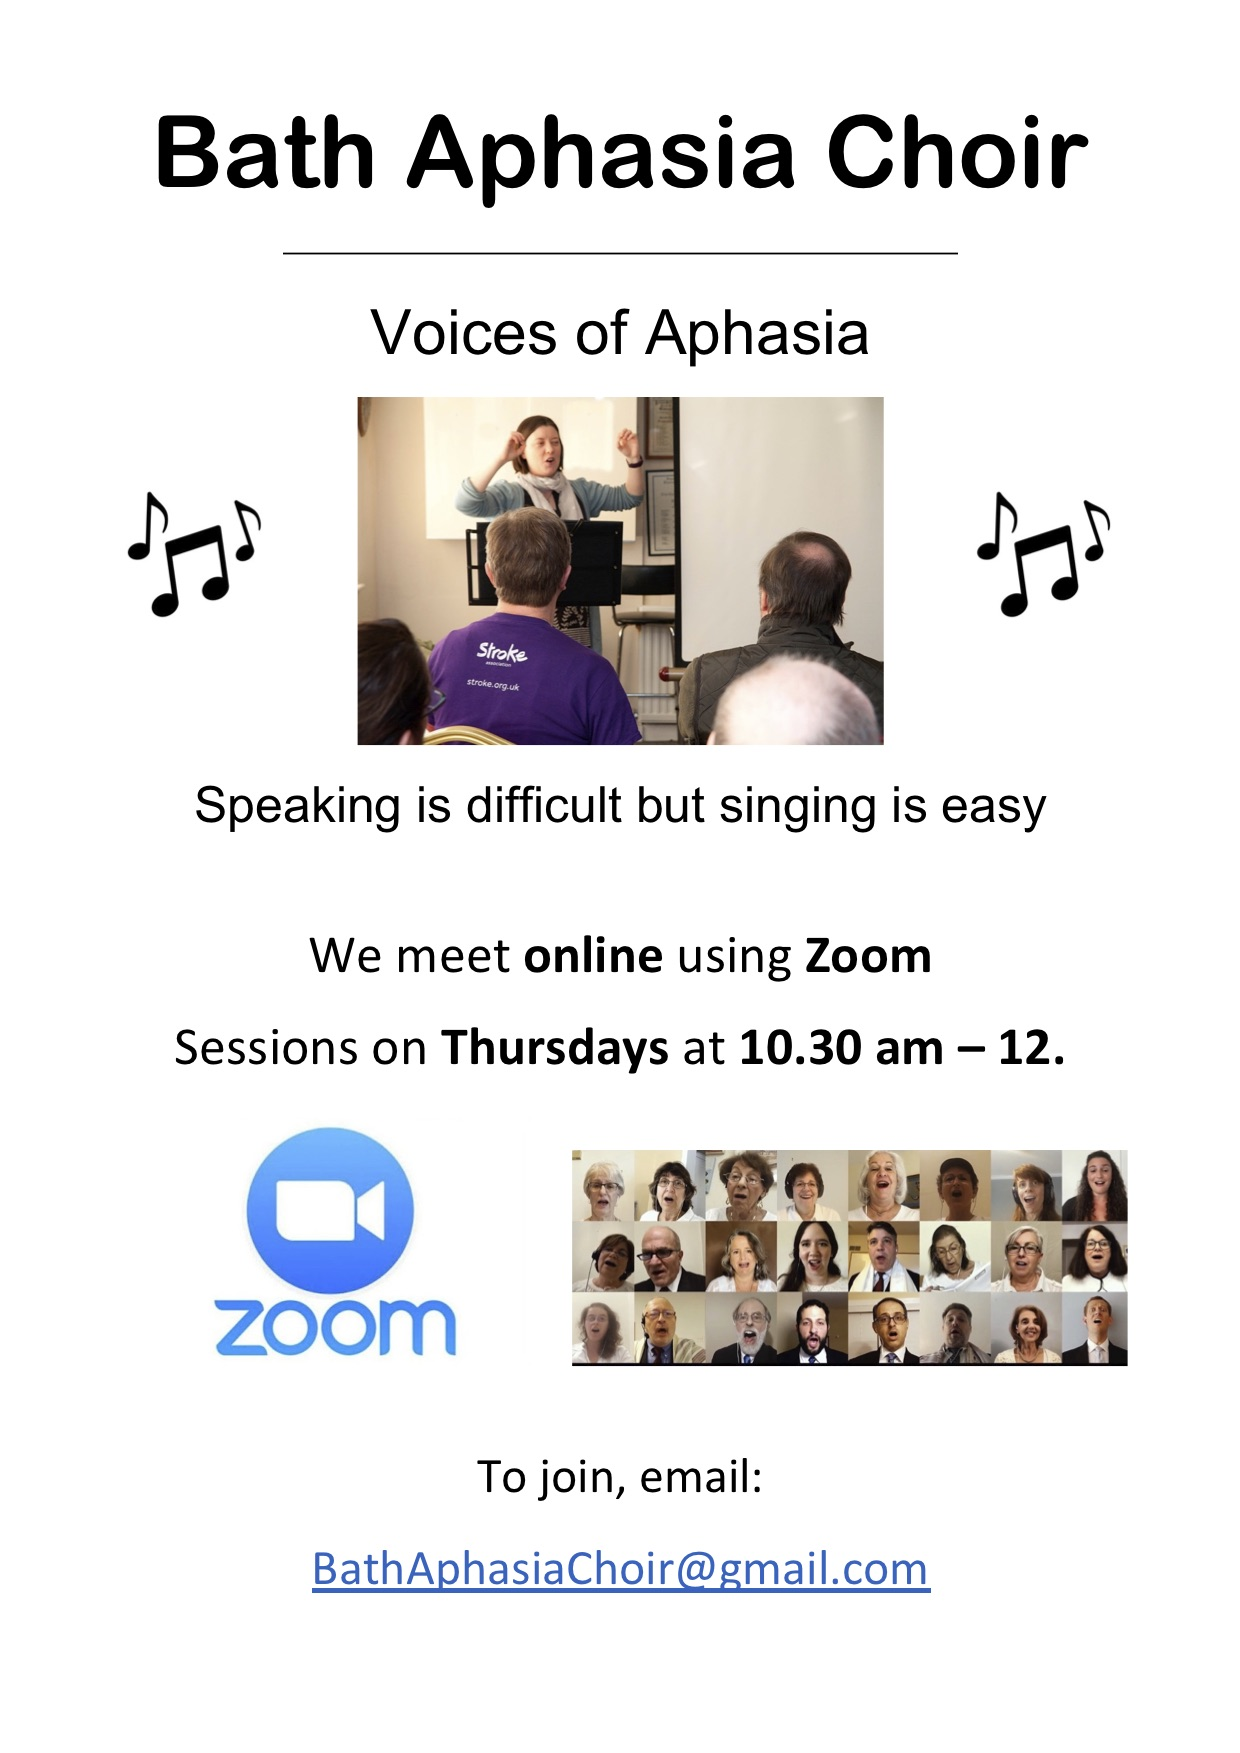 Bath Aphasia Choir flyer for zoom sessions